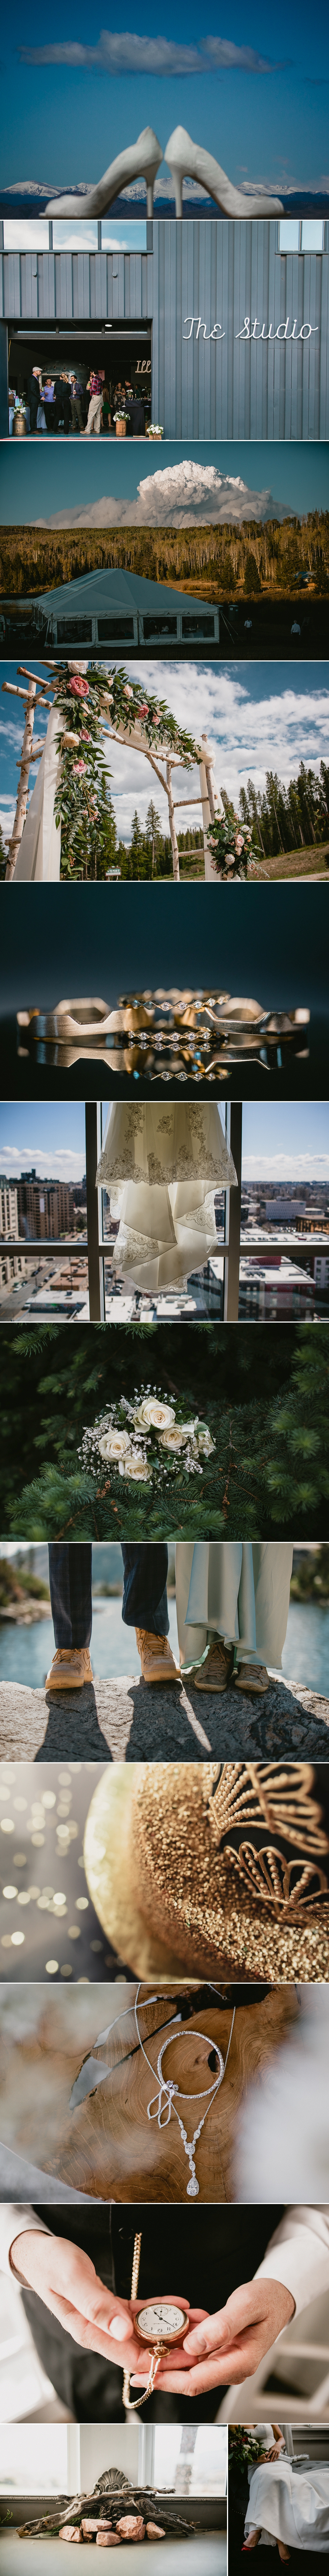 Details from Colorado's best 2019 wedding photography.